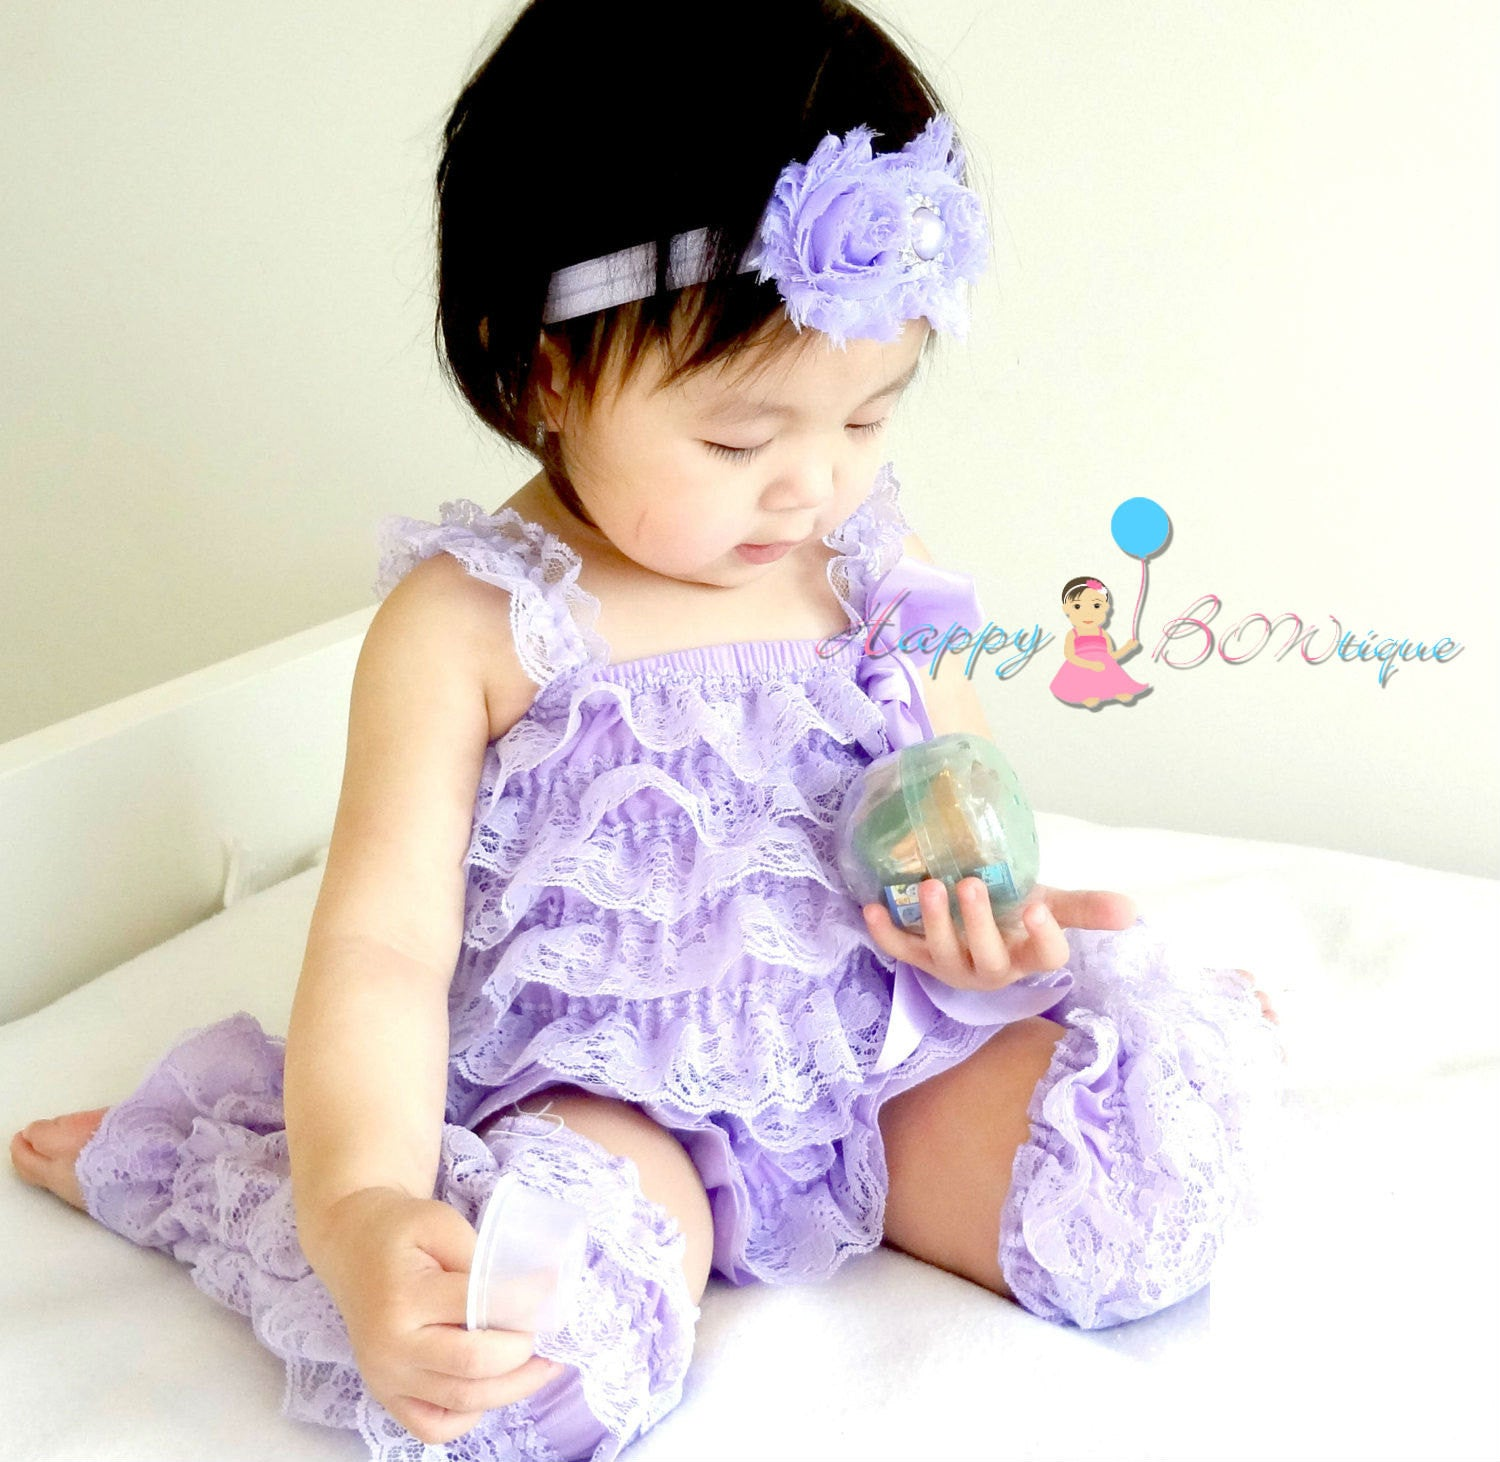 Lavender Petti Lace Romper set-Girl Lavender Romper and leg warmers set- Happy Bowtique- Baby Girl clothing